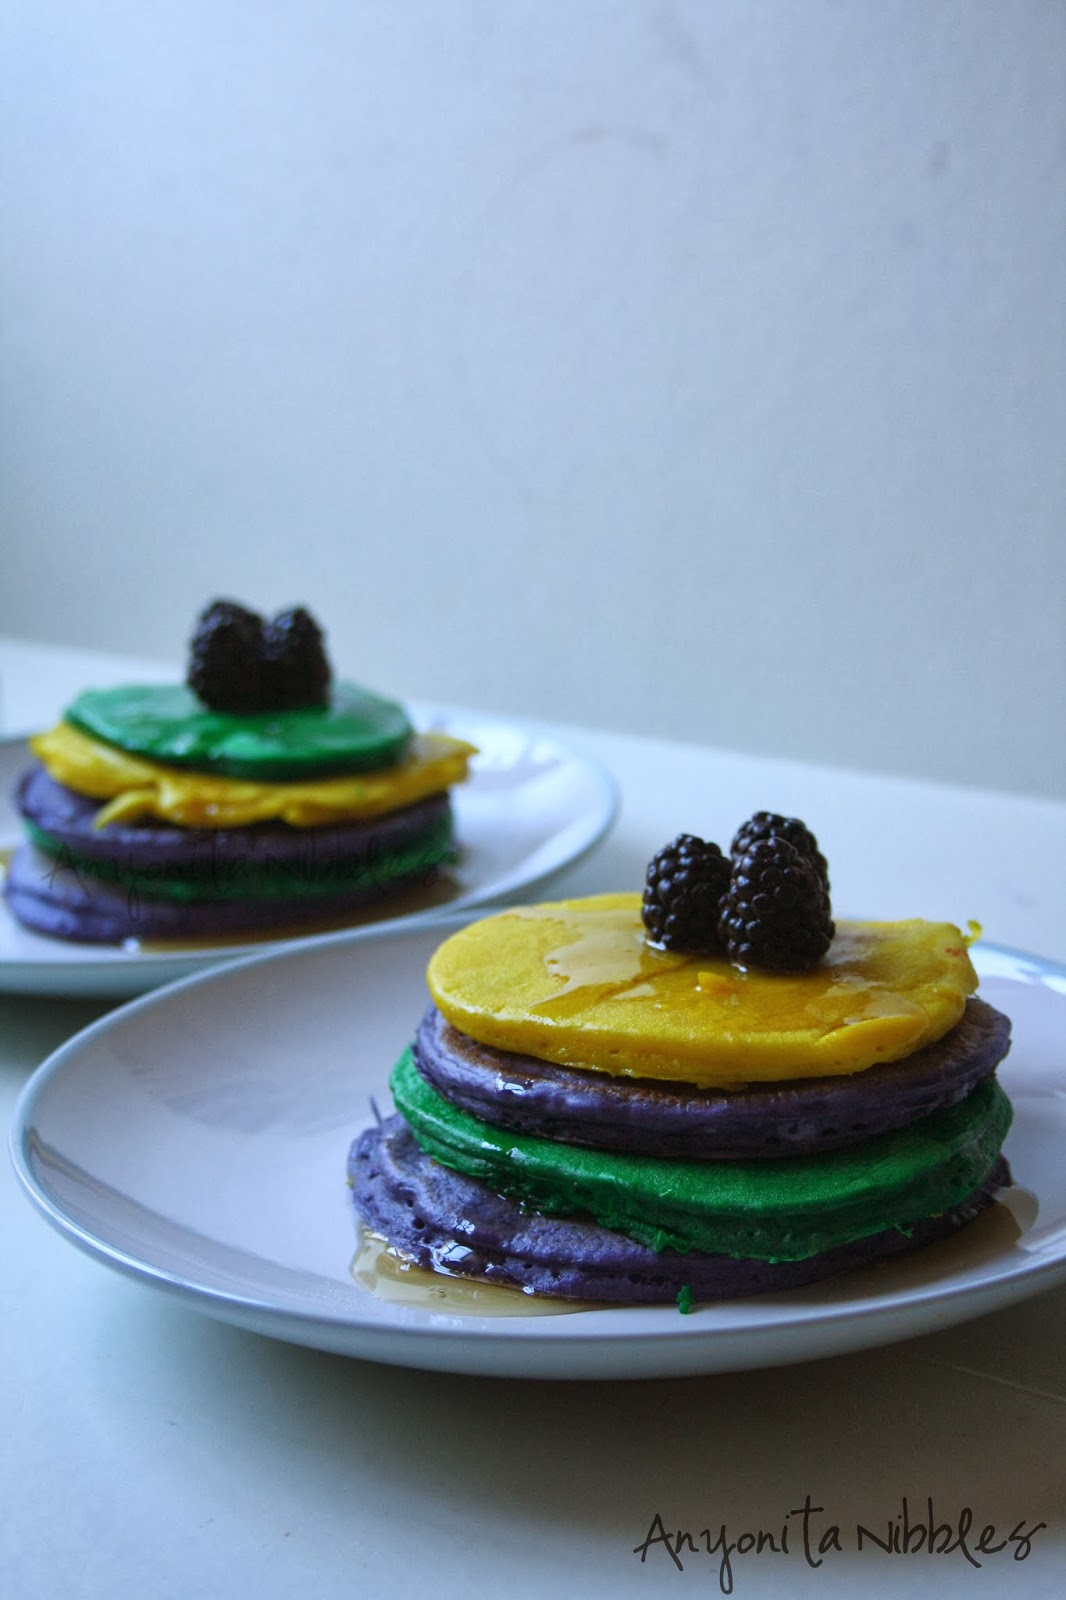 These thick, American-style pancakes are perfect for celebrating Mardi Gras